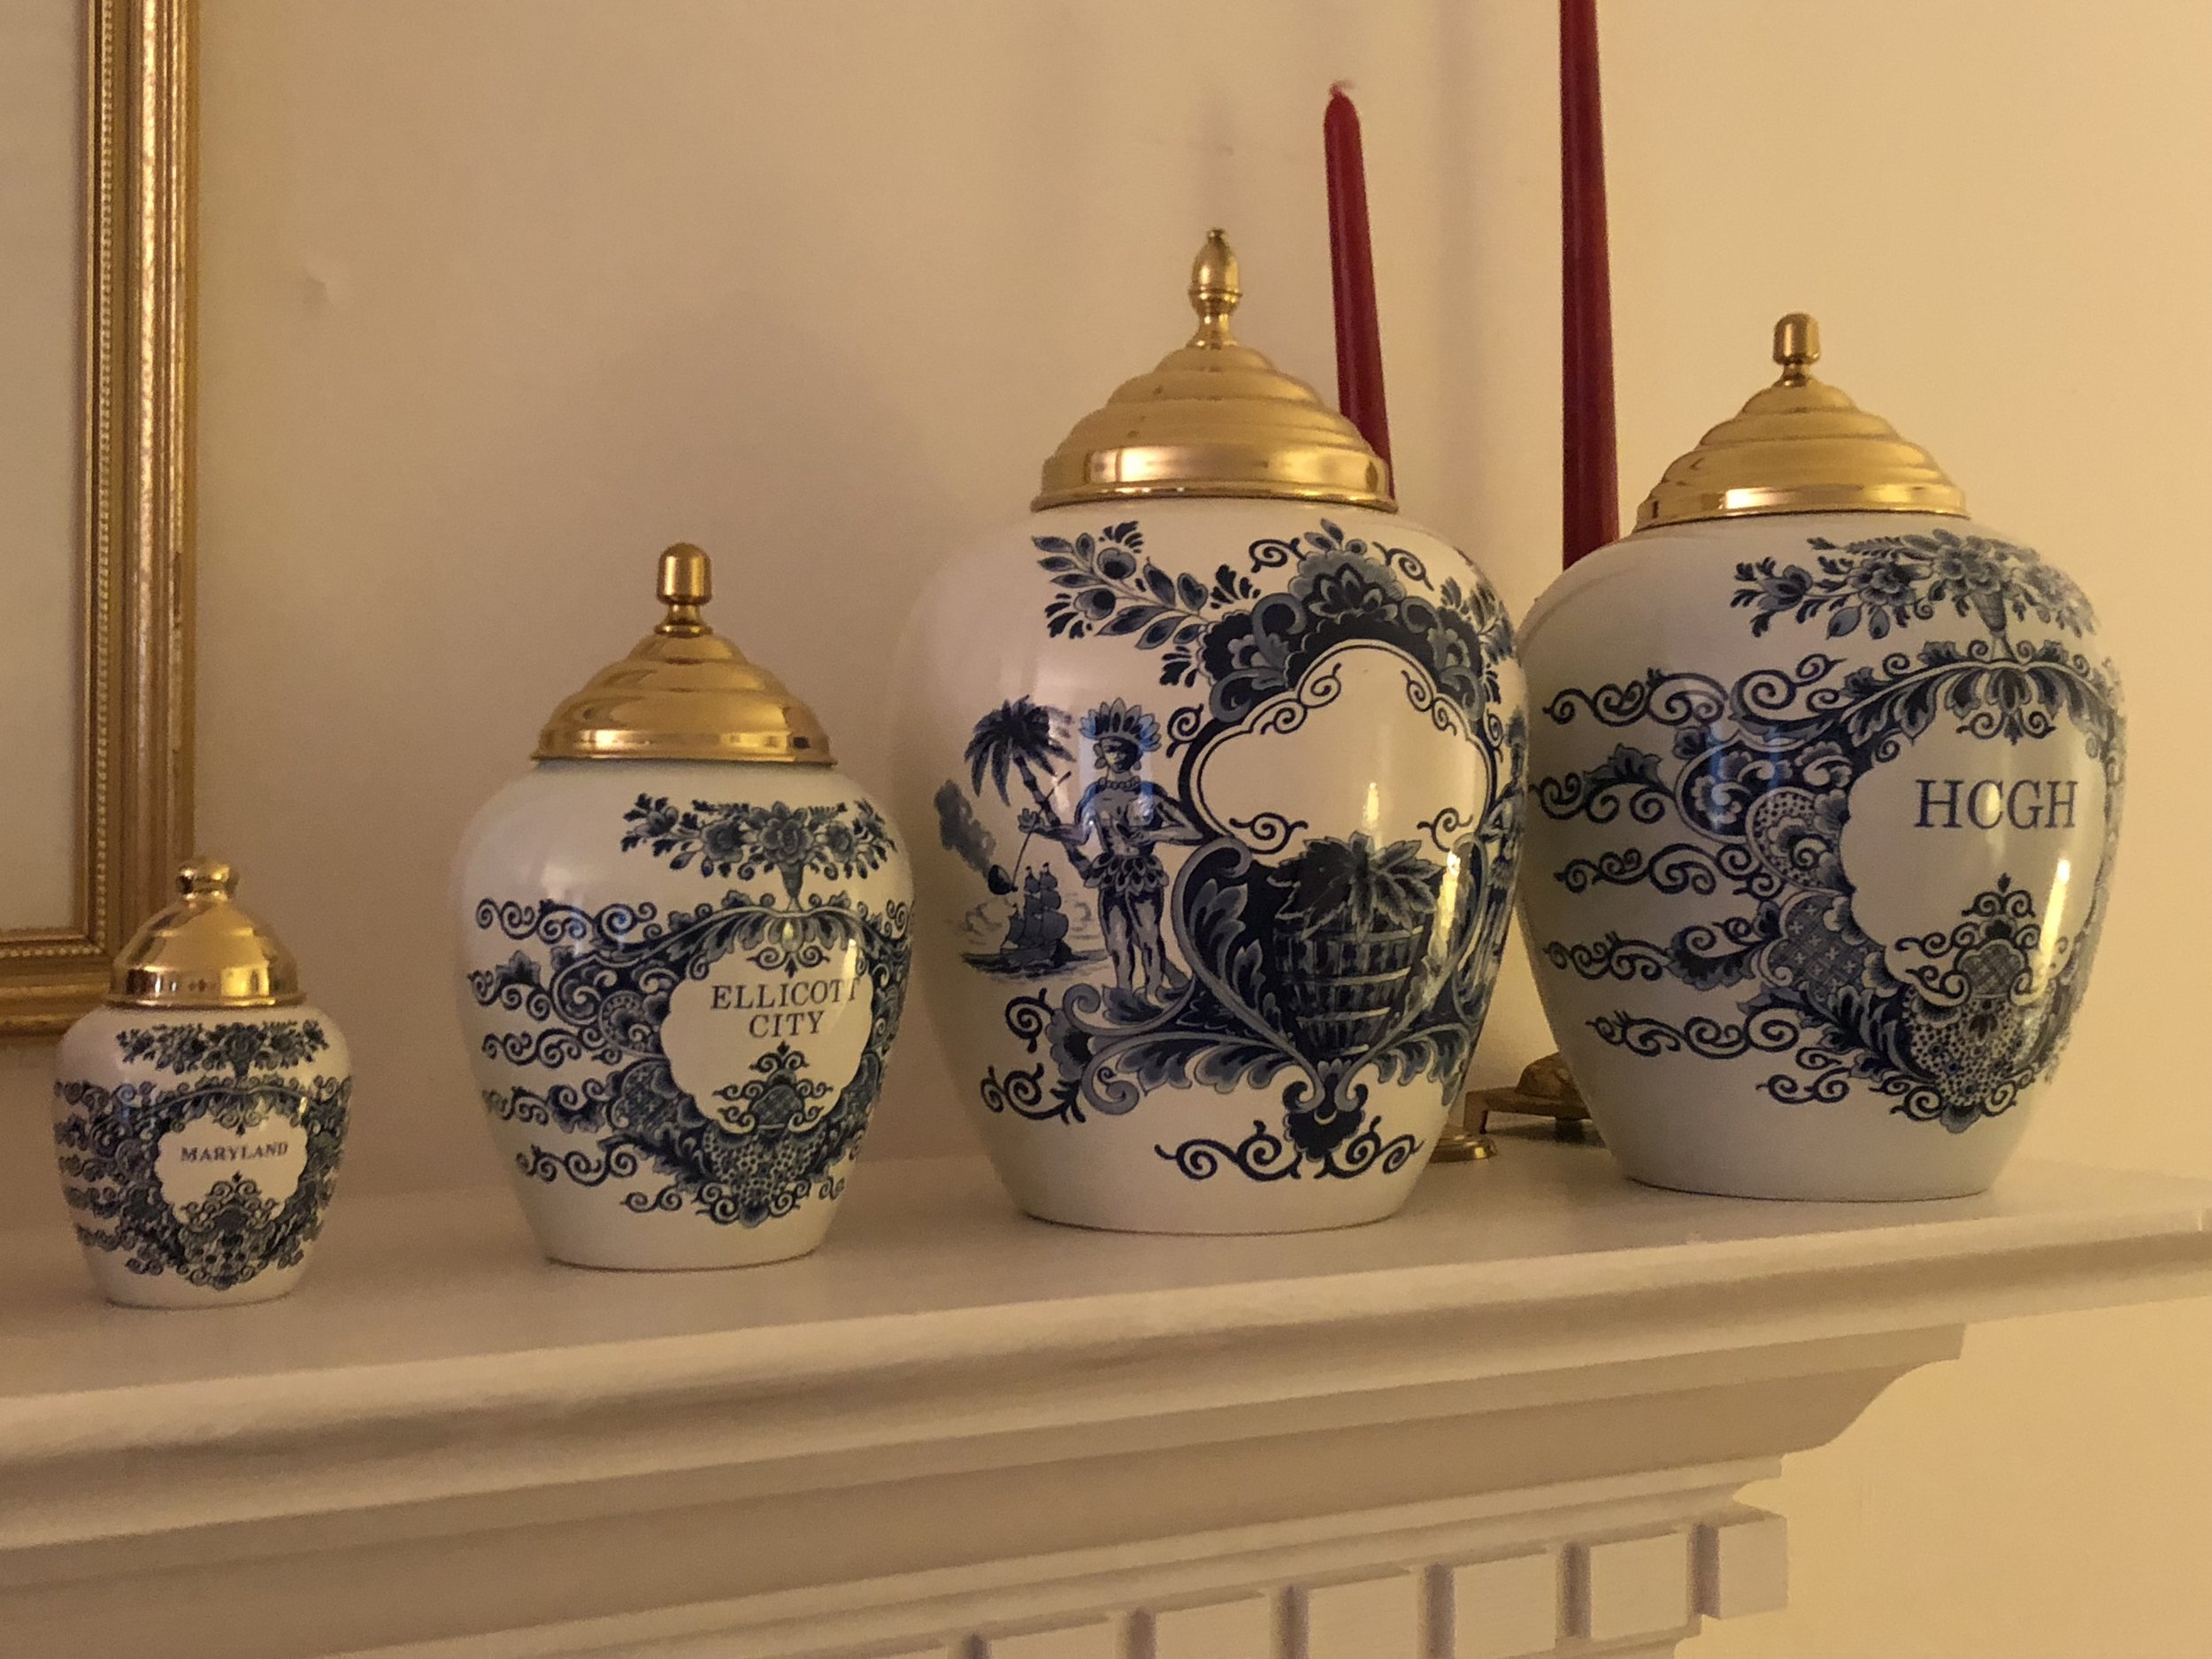 {These Delft tobacco jars are an extension of Debbie's unique collection.}